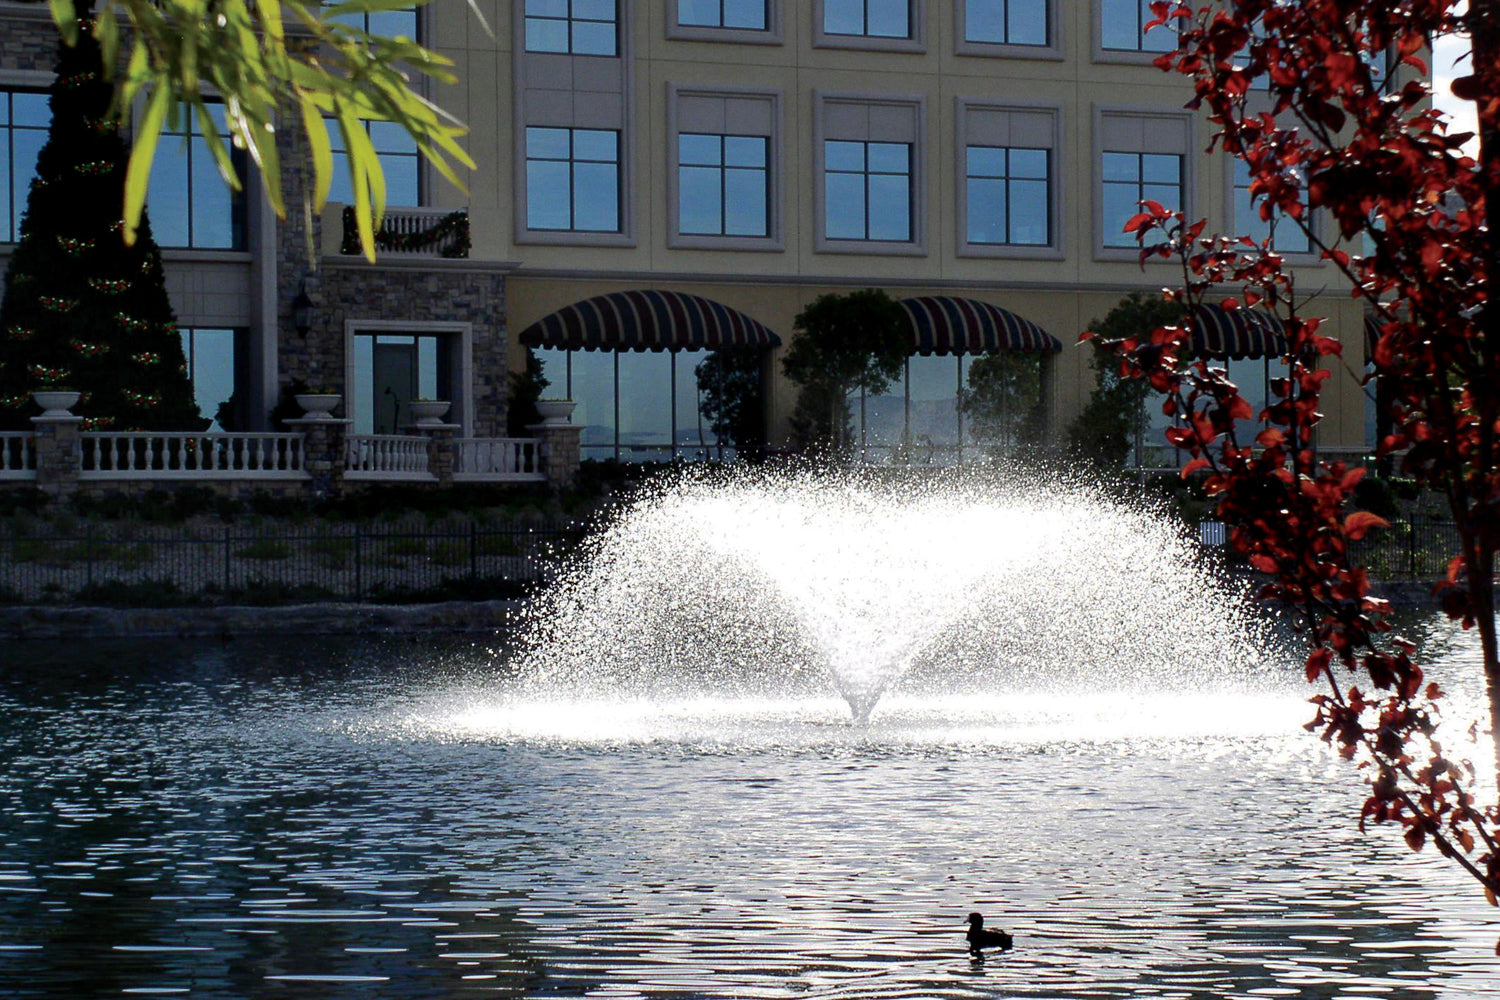 Concept III Aerating Fountains